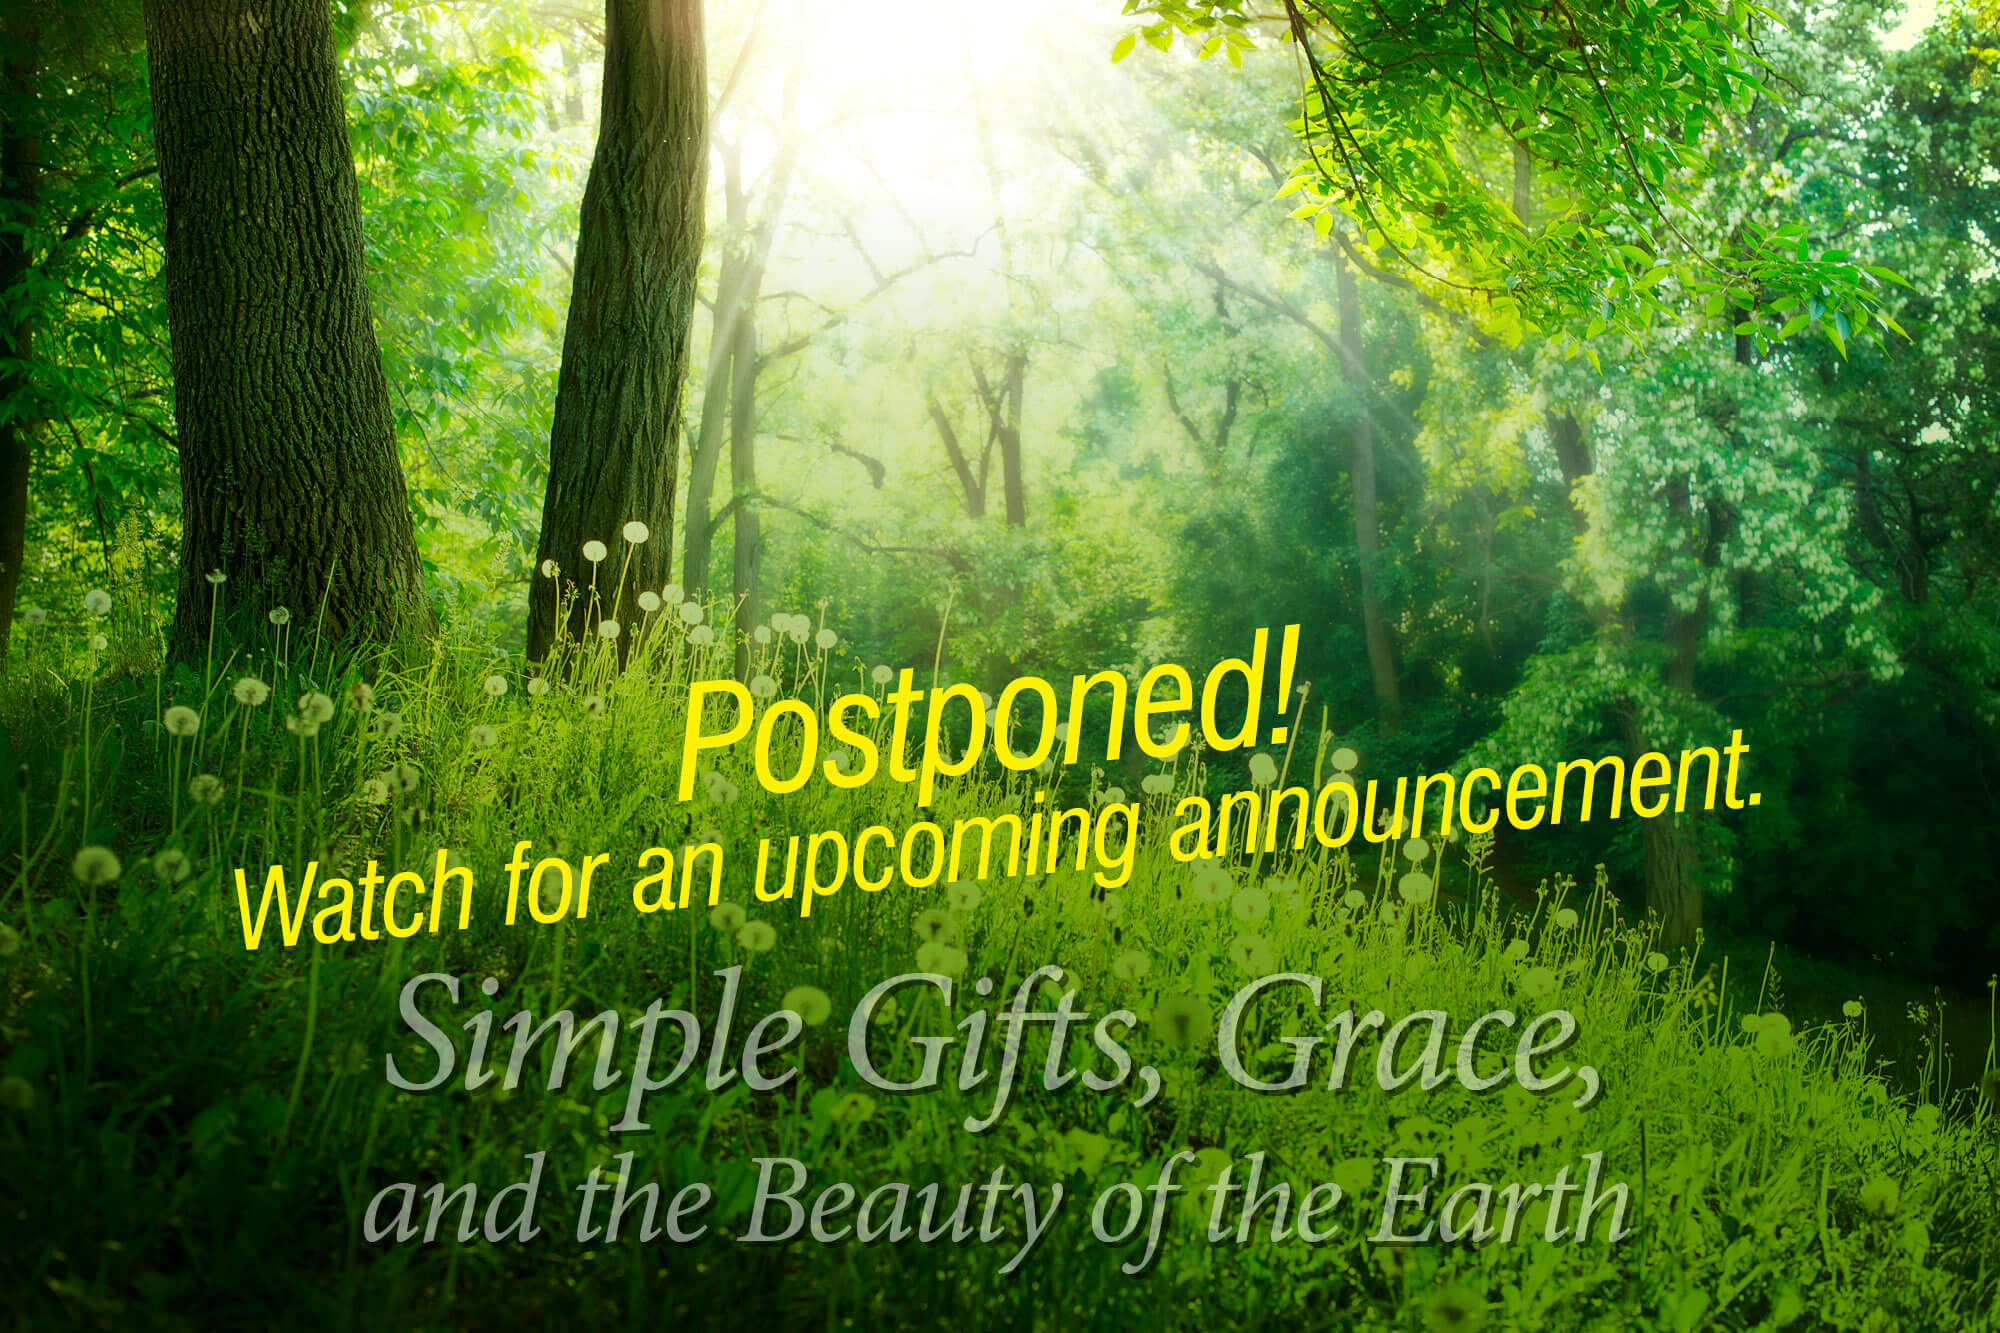 "Photograph of trees and grass with the words ""Simple Gifts, Grace, and the Beauty of the Earth Postponed."""